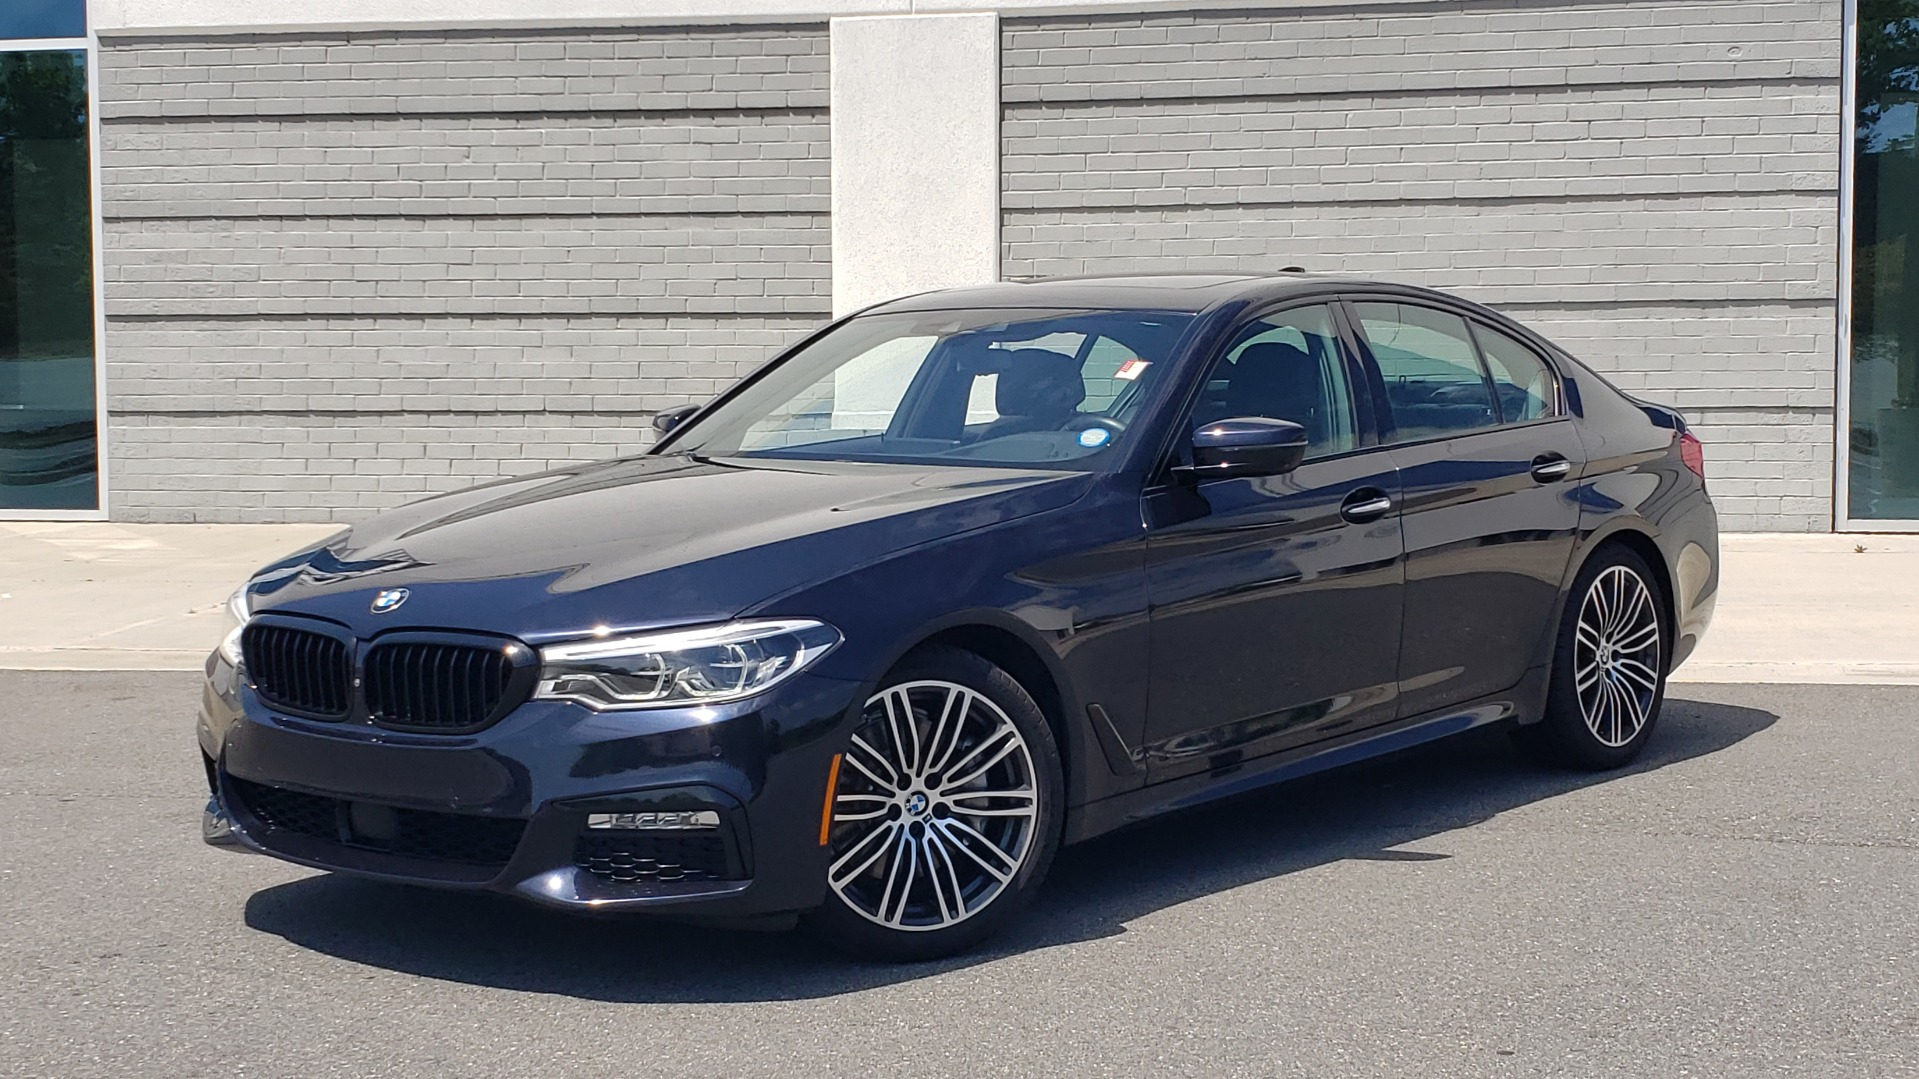 Used 2017 BMW 5 SERIES 540I XDRIVE M-SPORT / PREMIUM / DRVR ASST PLUS / CLD WTHR / LUXURY for sale $34,995 at Formula Imports in Charlotte NC 28227 1